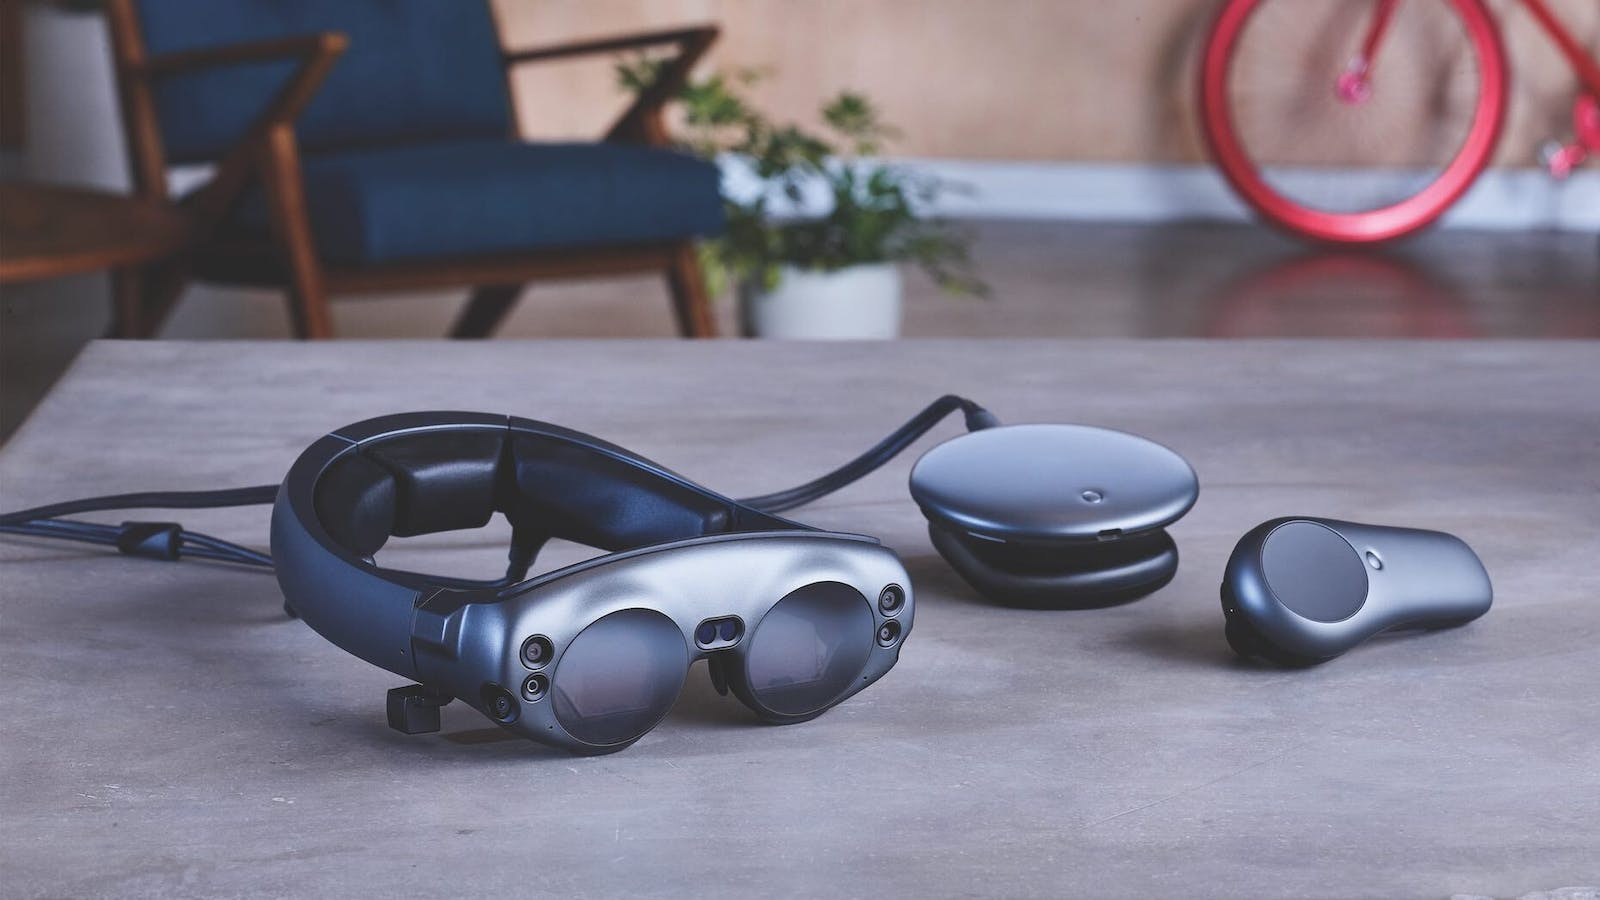 The Magic Leap 1 headset, wearable computer accessory and controller. Source: Magic Leap